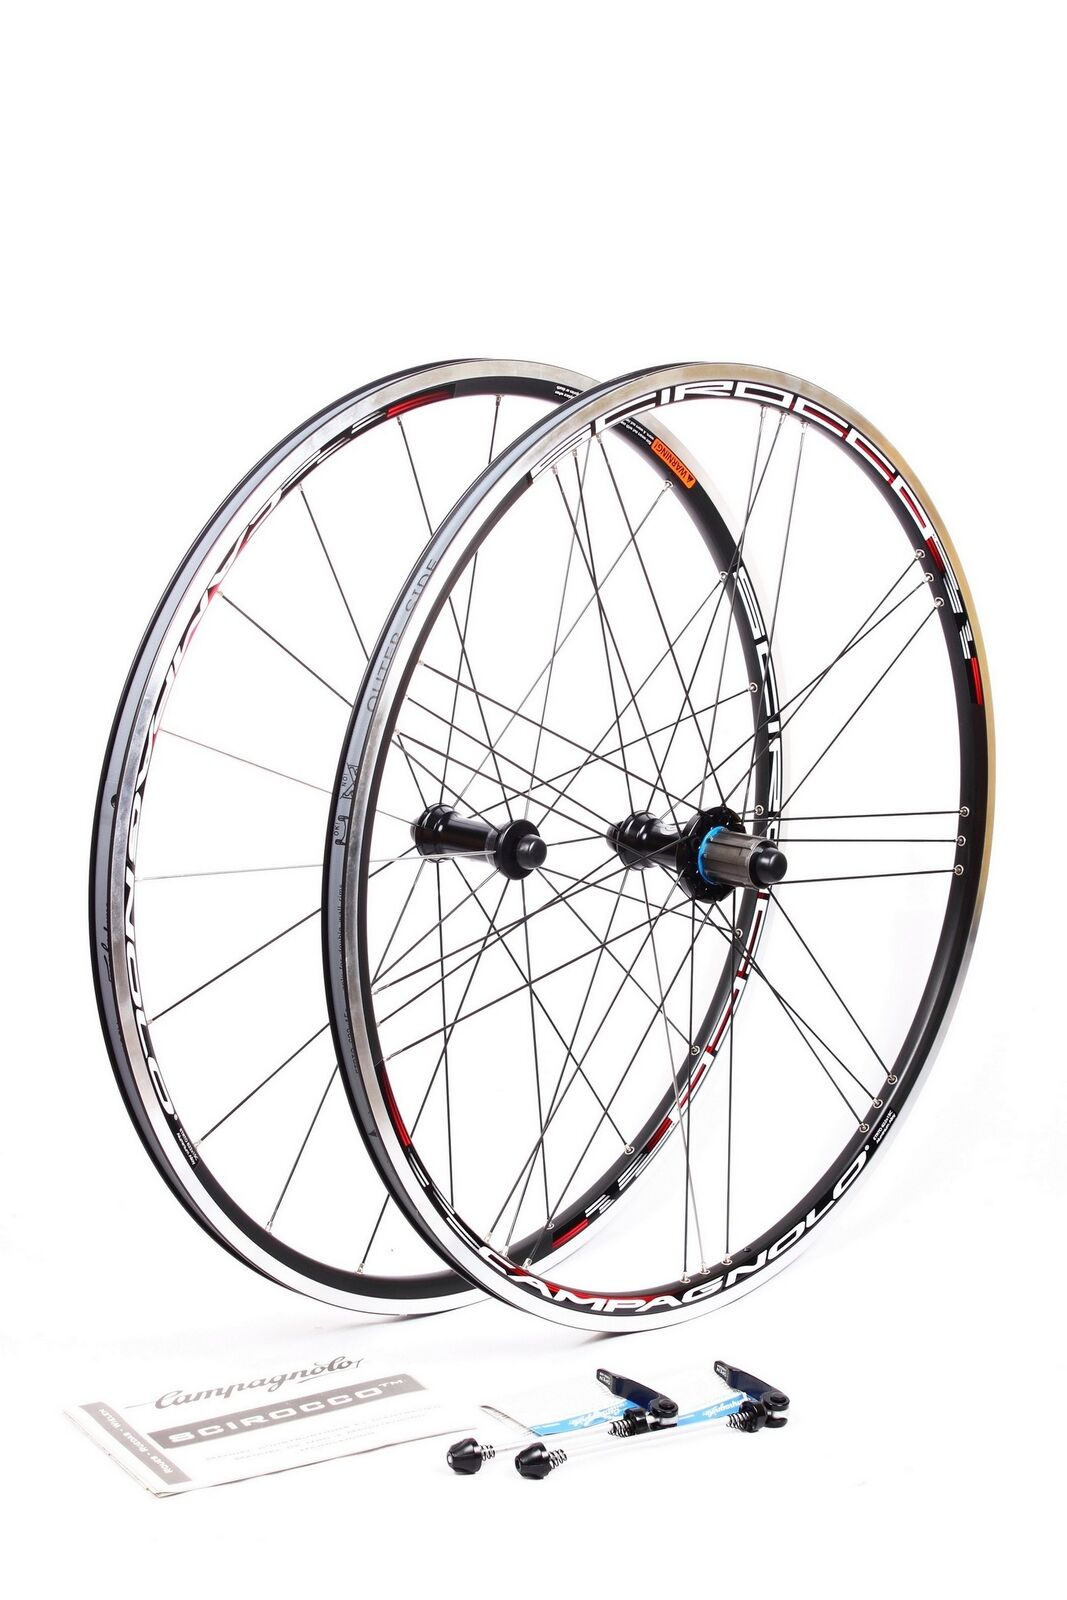 Campagnolo Scirocco Road Bicycle Bike 700C Wheelset Clincher Wheels for Shimano